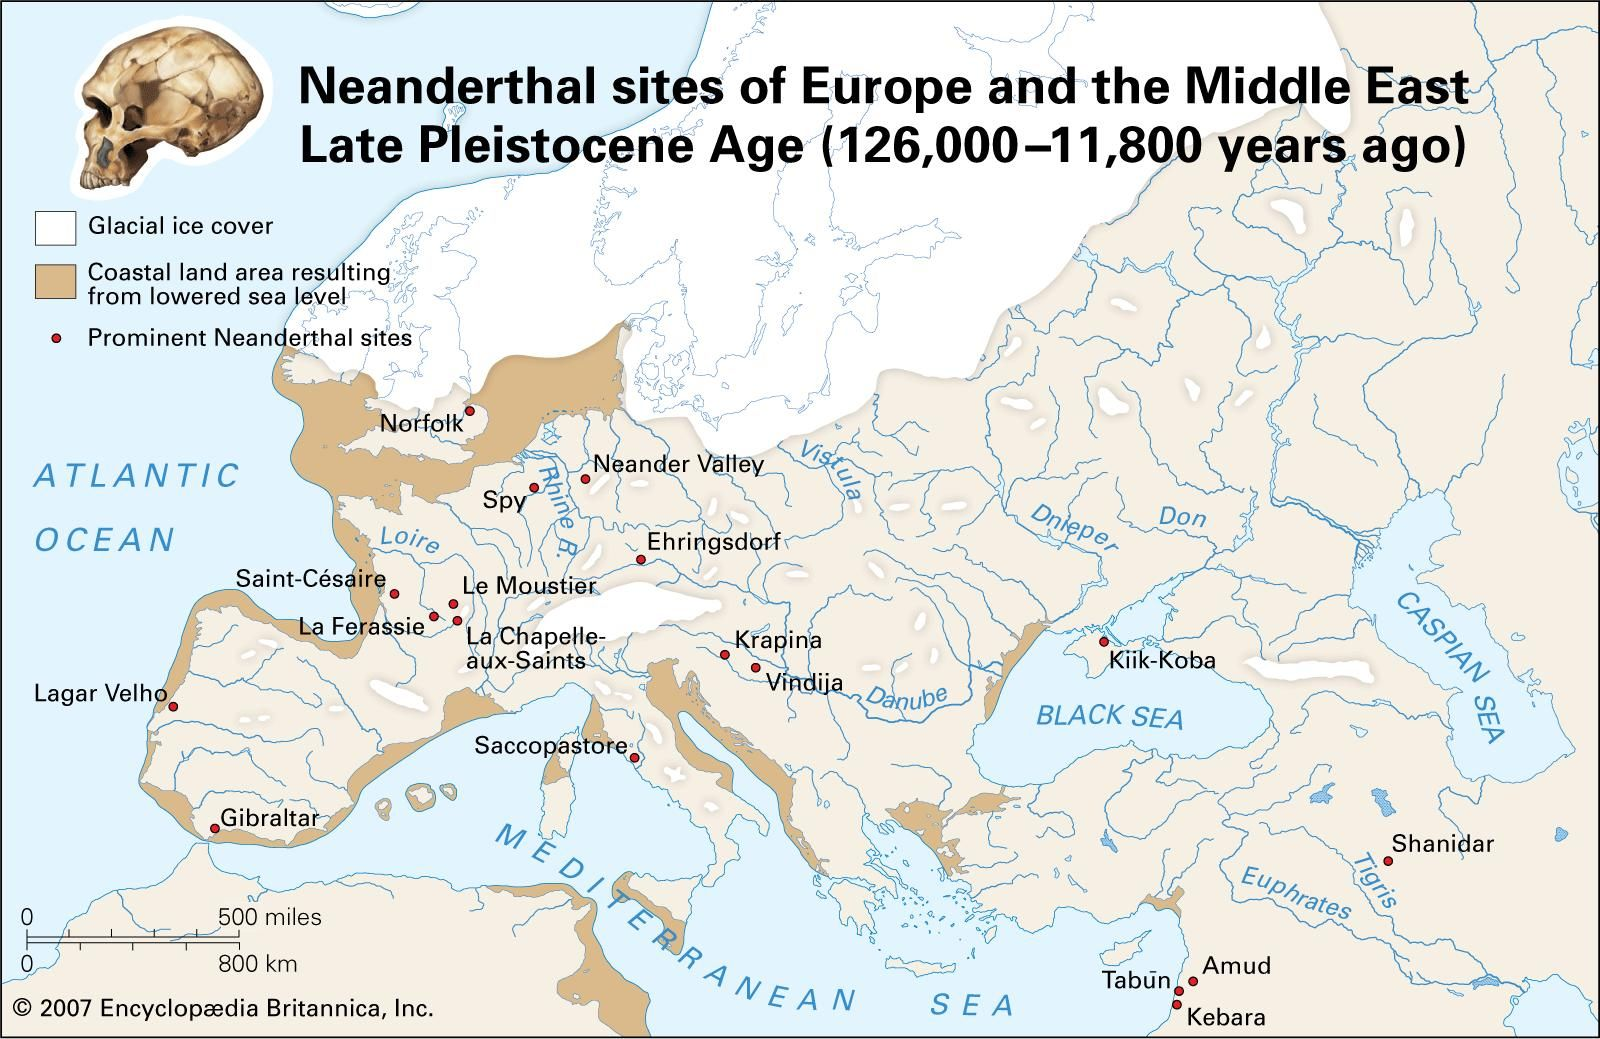 Neanderthal sites of Europe and the Middle East Late Pleistocene